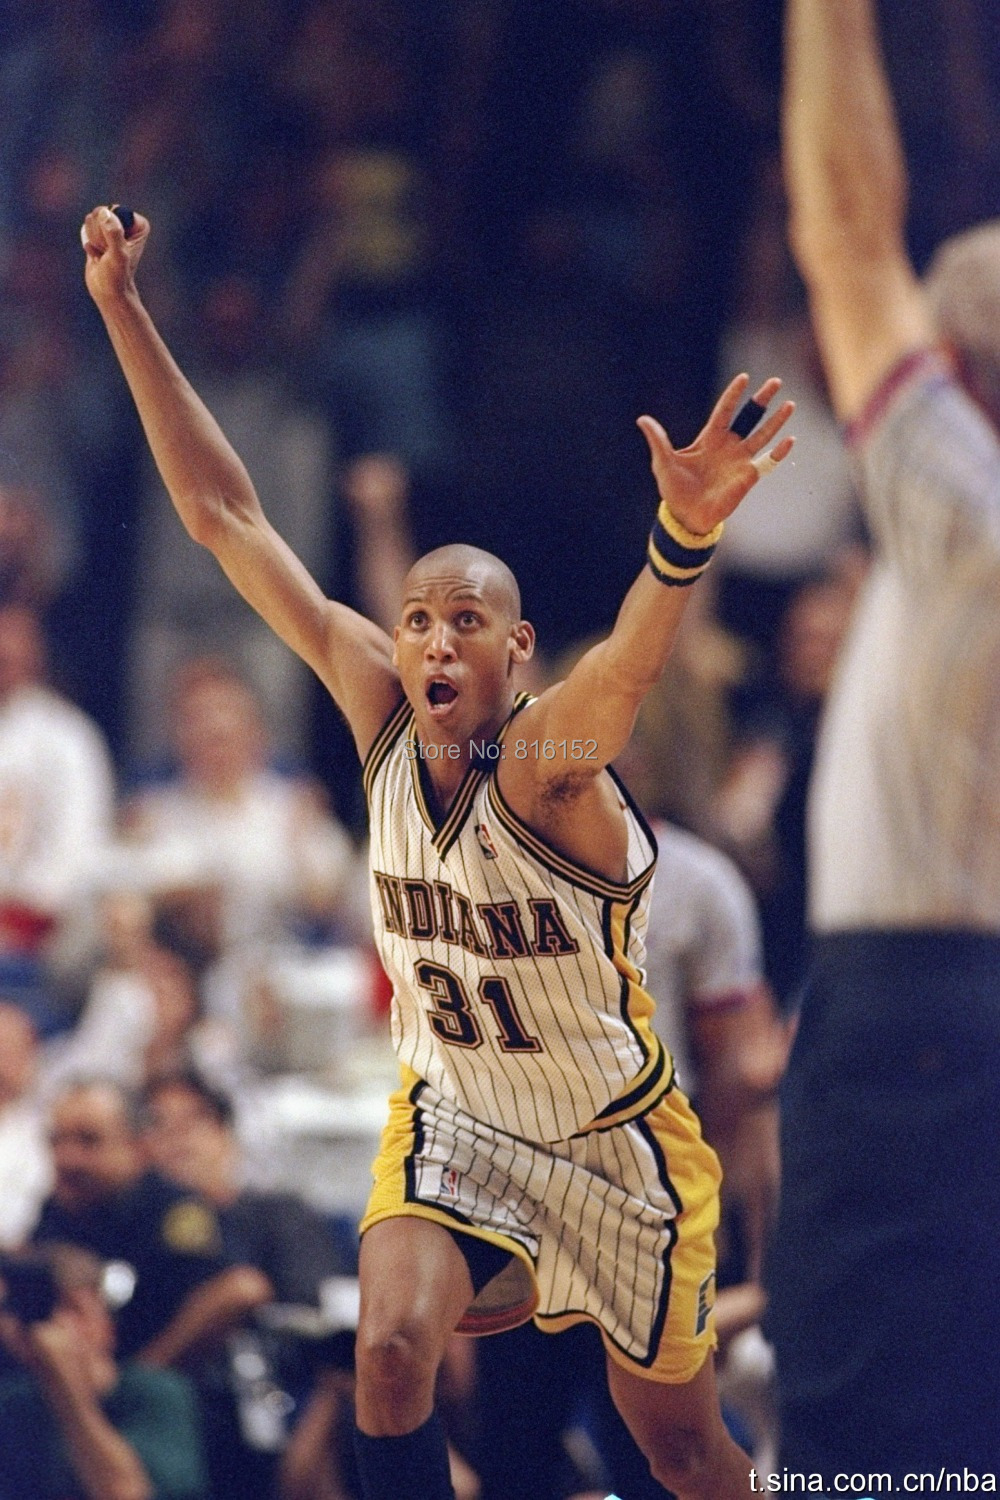 a biography of reggie miller a basketball player